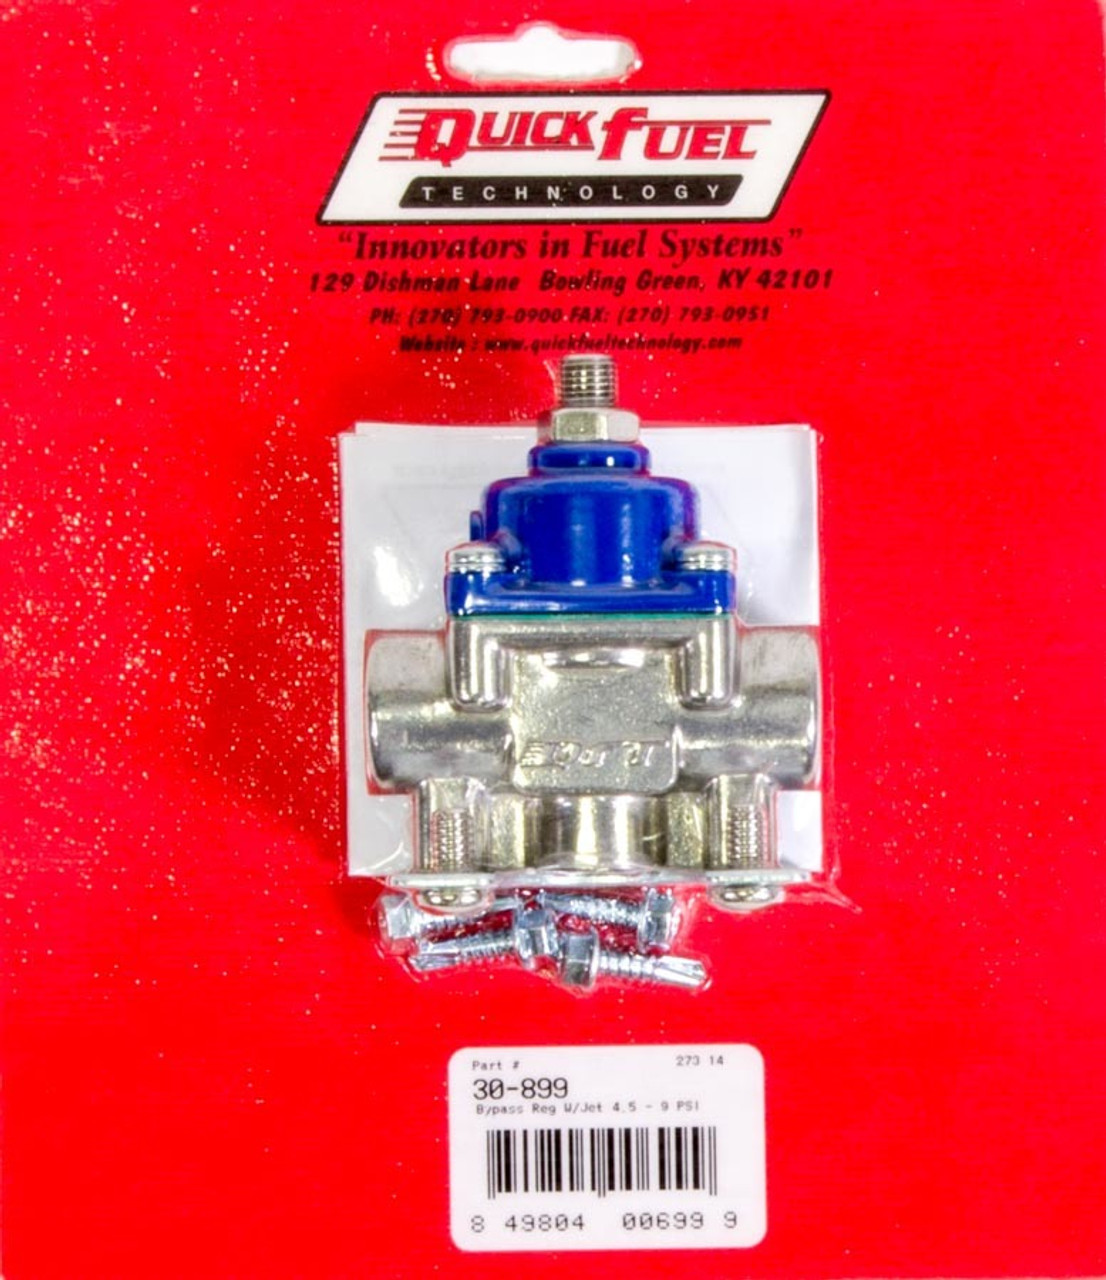 QFT30-899, Fuel Pressure Regulator, 4-1/2 to 9 psi, In-Line, 3/8 in NPT Female Inlet, 3/8 in NPT Female Outlet, 3/8 in NPT Female Return, Bypass, Aluminum, Blue / Natural, E85 / Gas / Methanol, Each